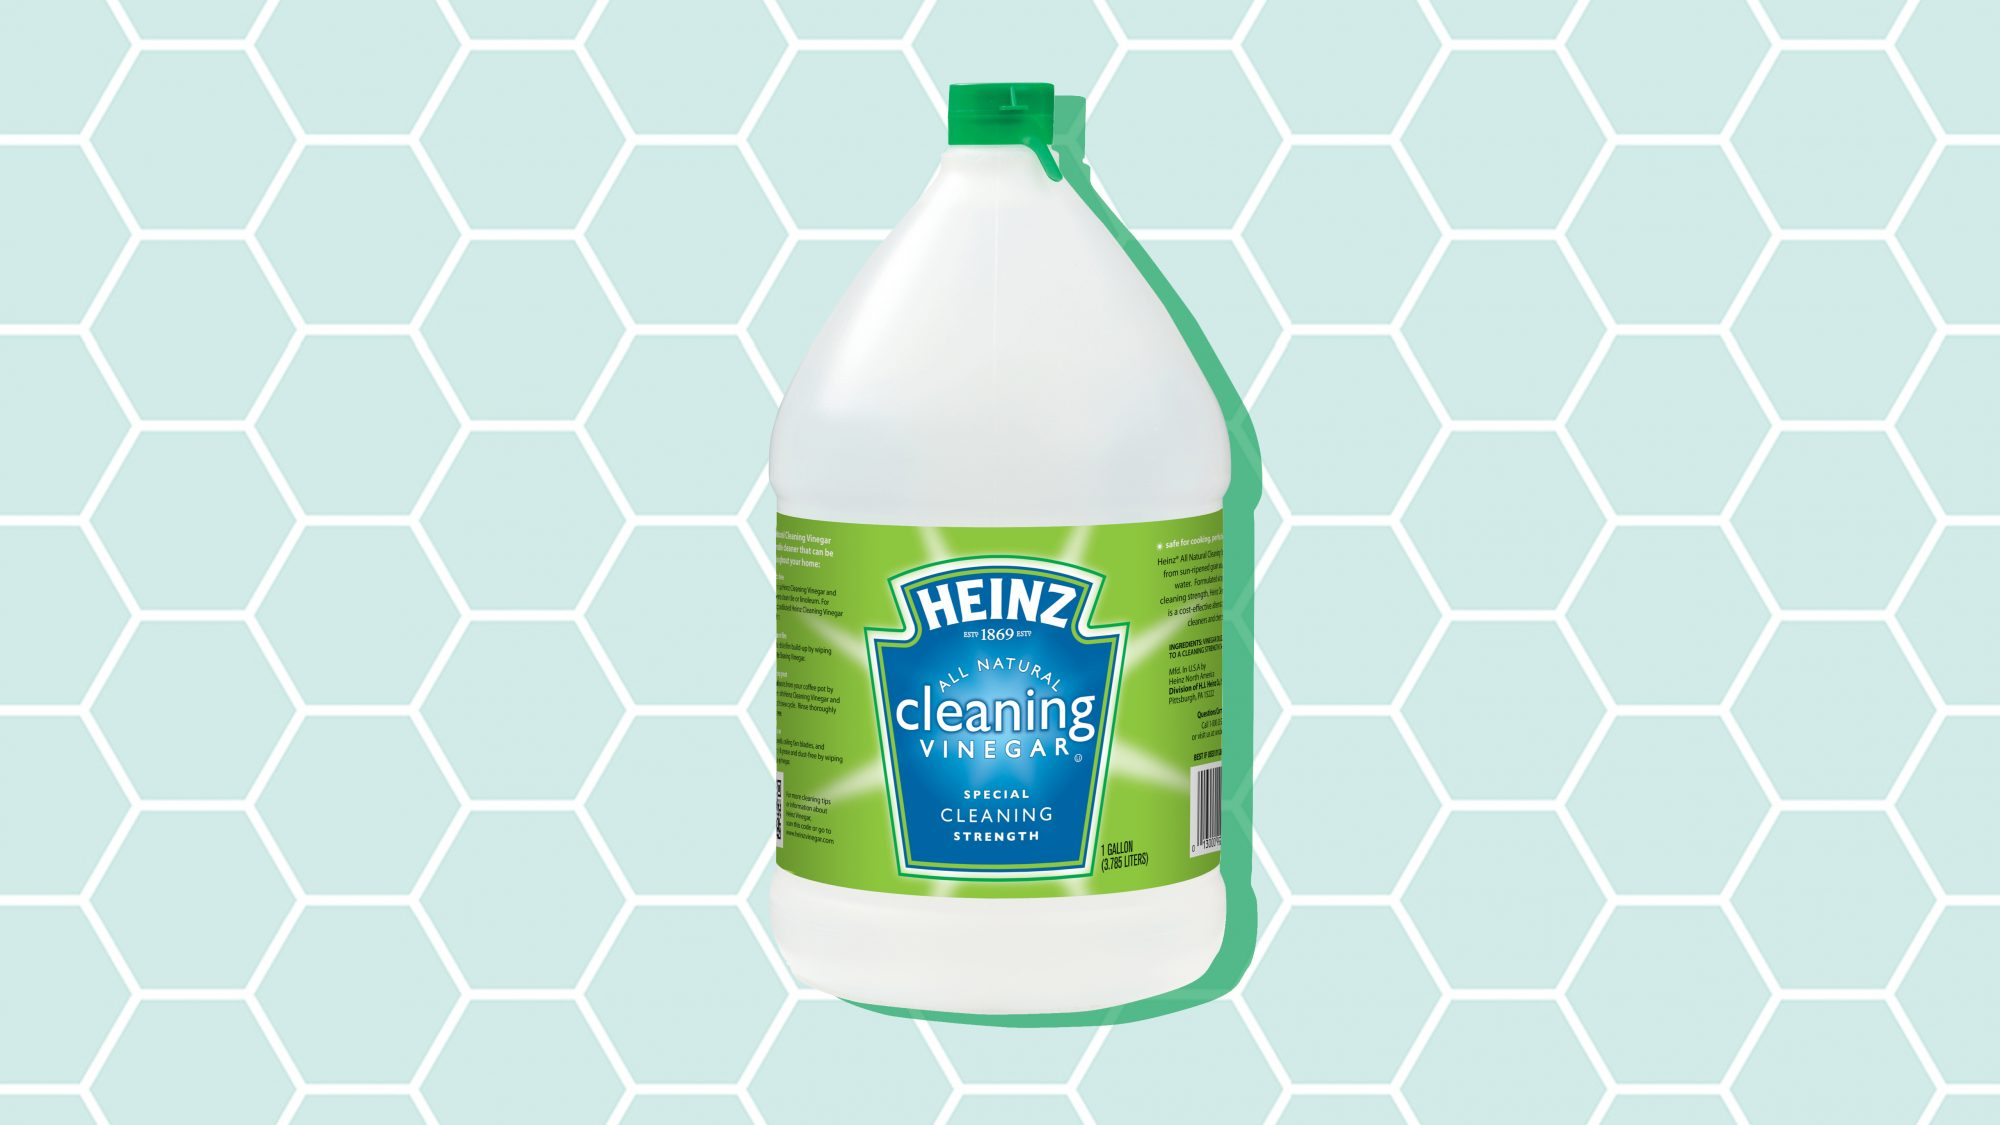 heinz-cleaning-vinegar